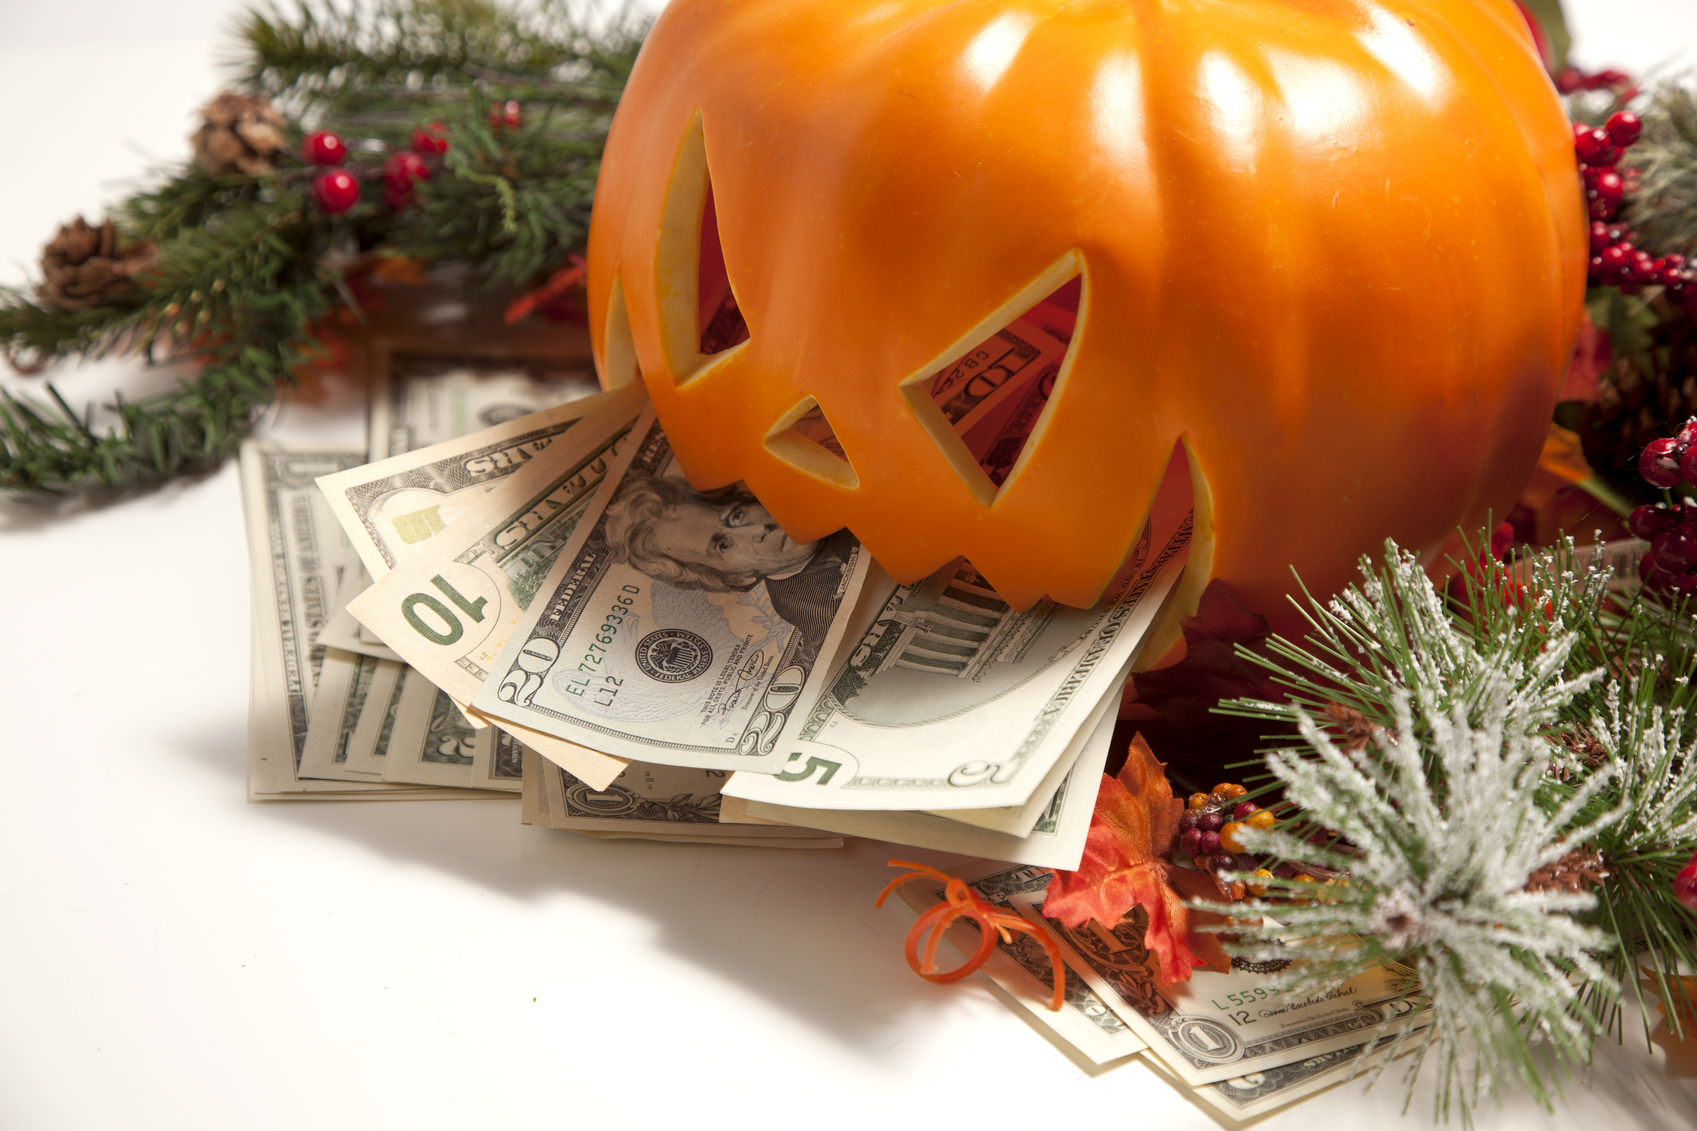 halloween is here! zollar helps people make money with funny